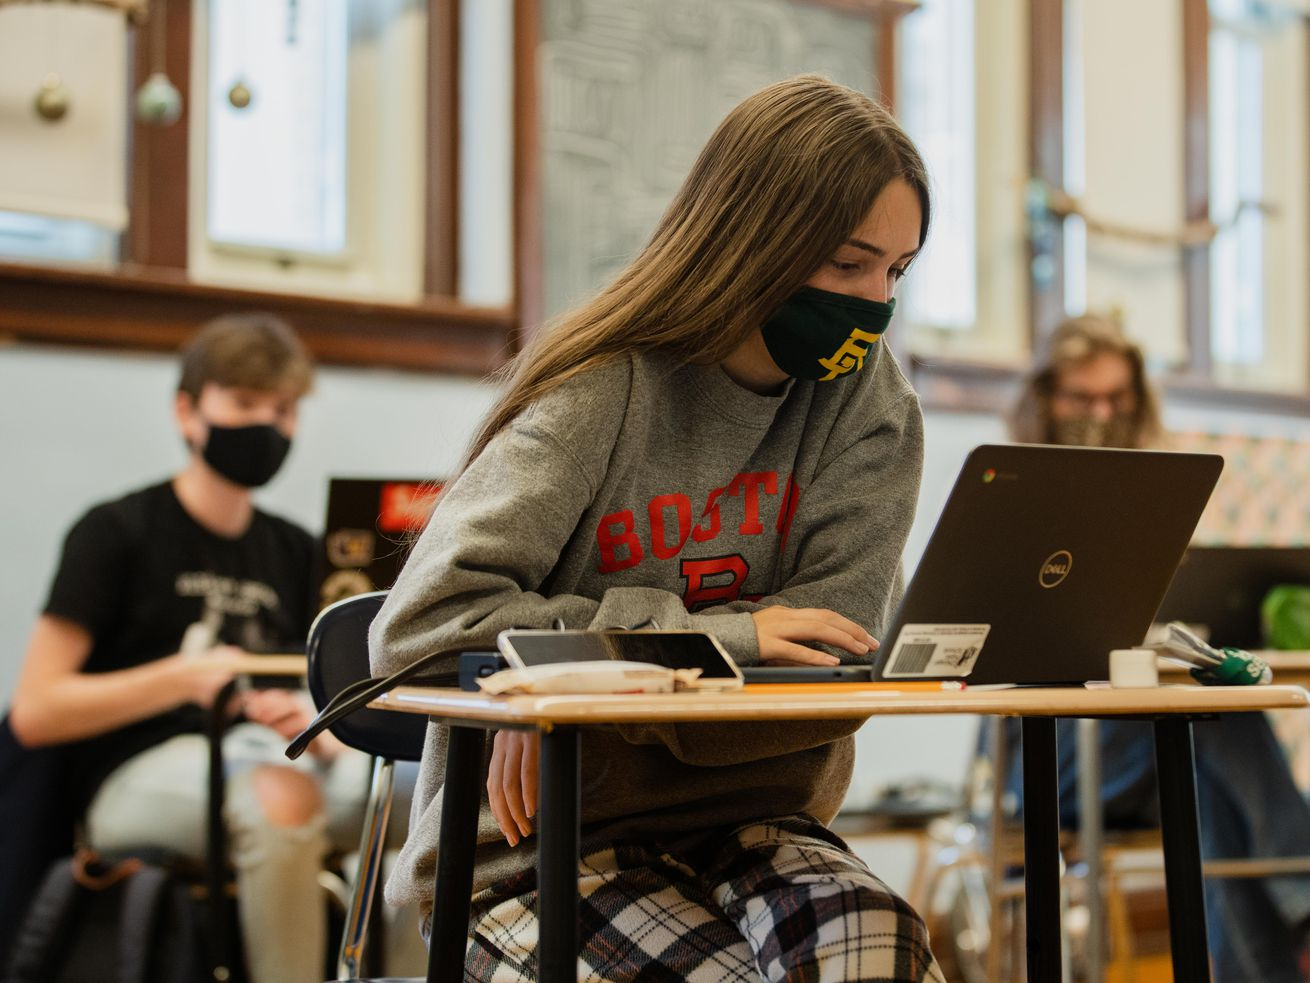 An IB History student looks at a laptop at Nicholas Senn High School in the Edgewater neighborhood, Friday afternoon, April 23, 2021. All students and staff, regardless of vaccination status, will be required to wear masks next school year.